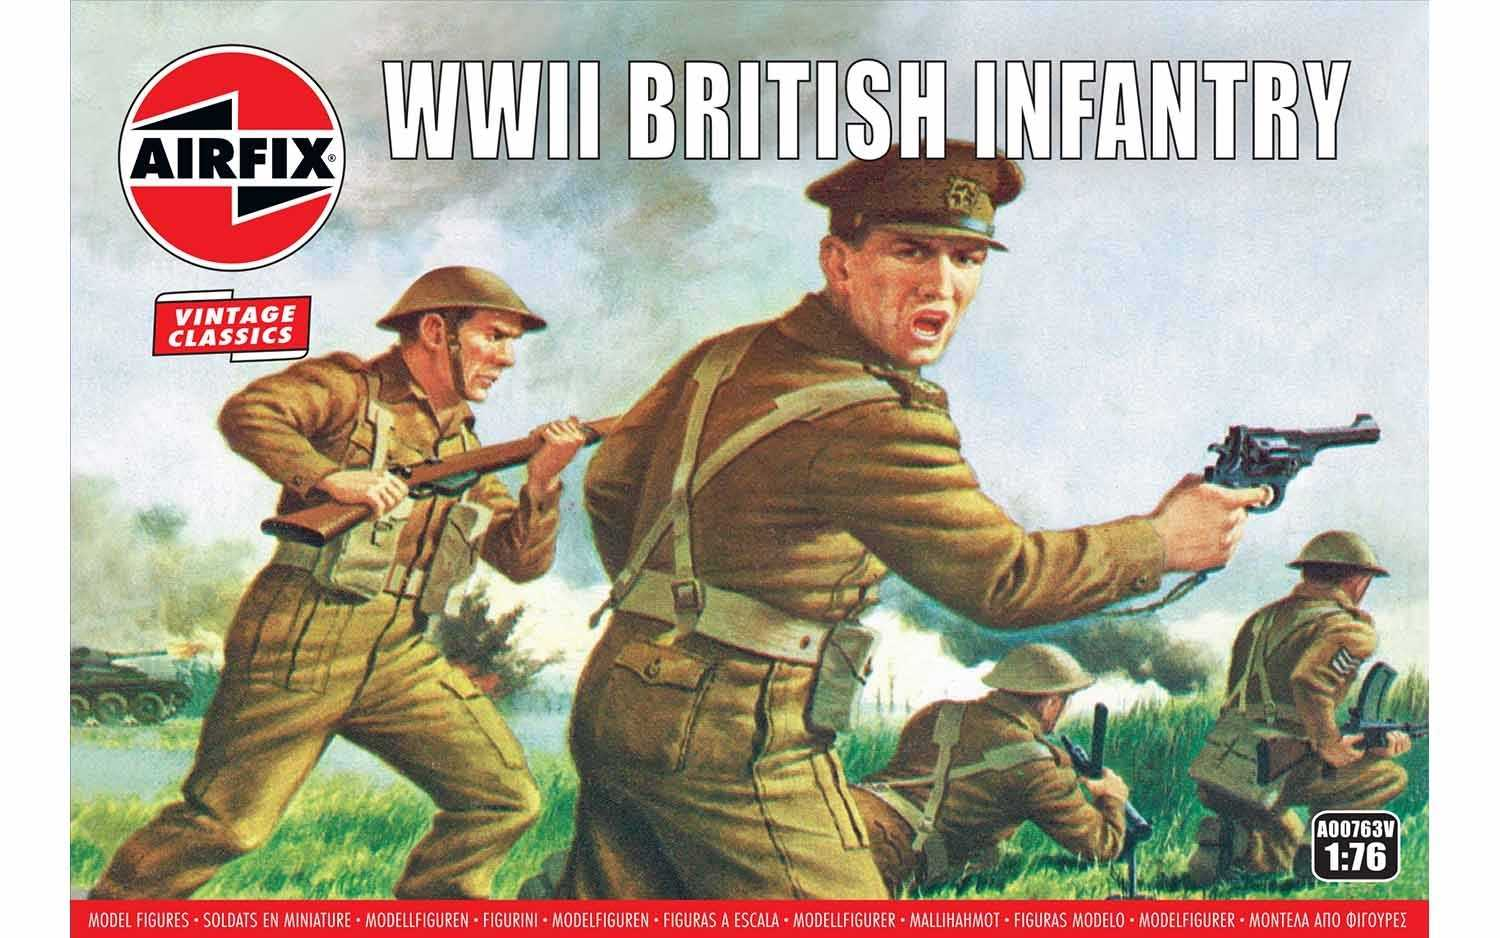 View Product - 1:76 WWII British Infantry (Classic Kit VINTAGE)